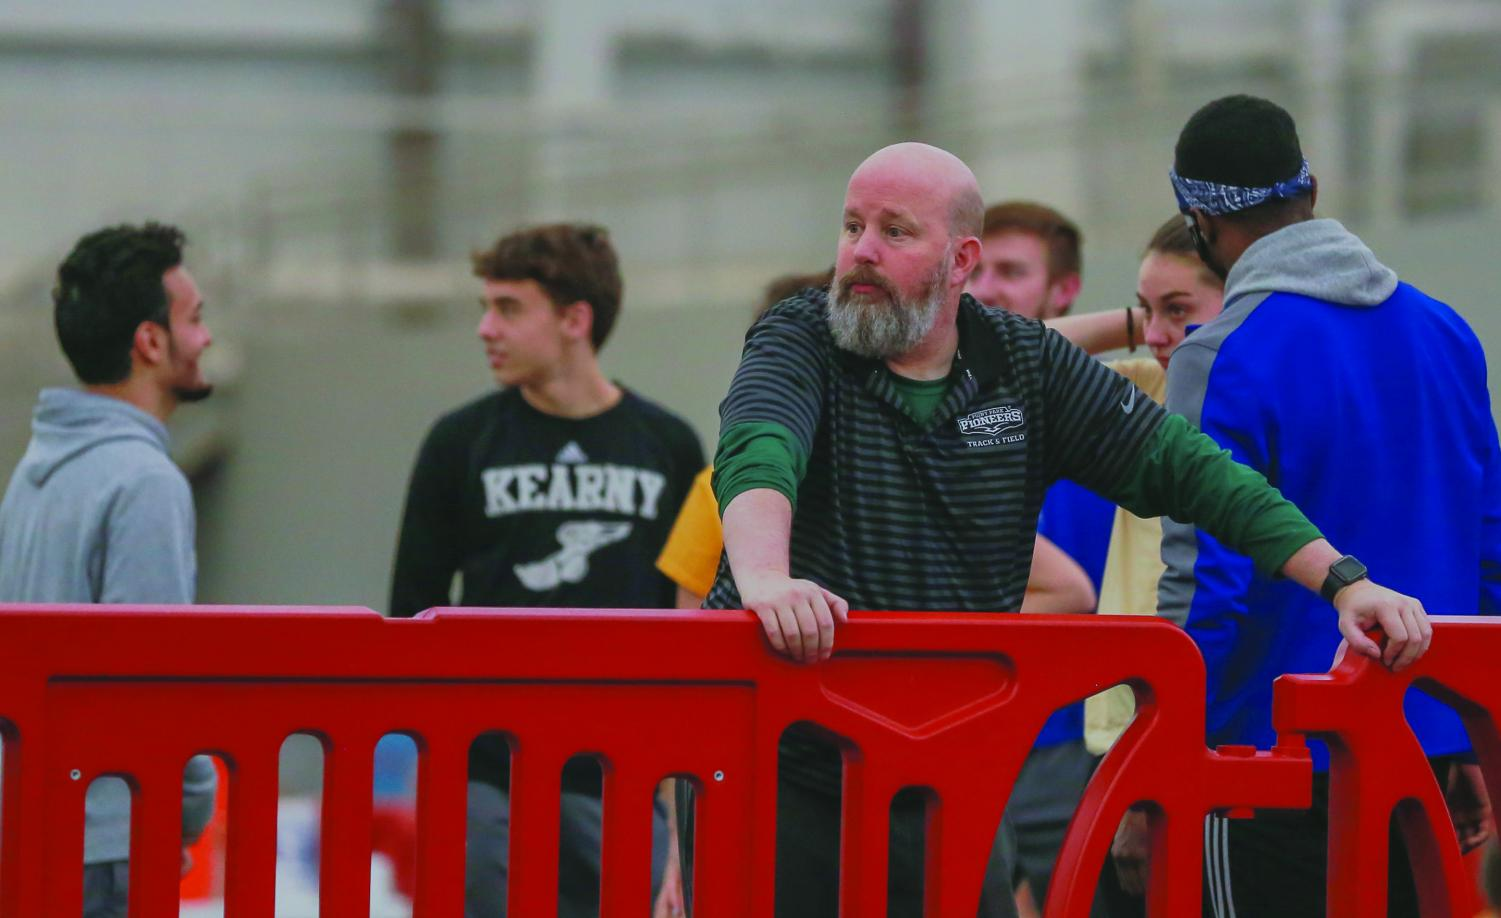 Former head coach of the track and field and cross country teams, Kelly Parsley, stands on the sidelines during a meet earlier this season. Parsley was named Coach of the Year ten times total throughout his tenure with the teams before his termination on Friday.